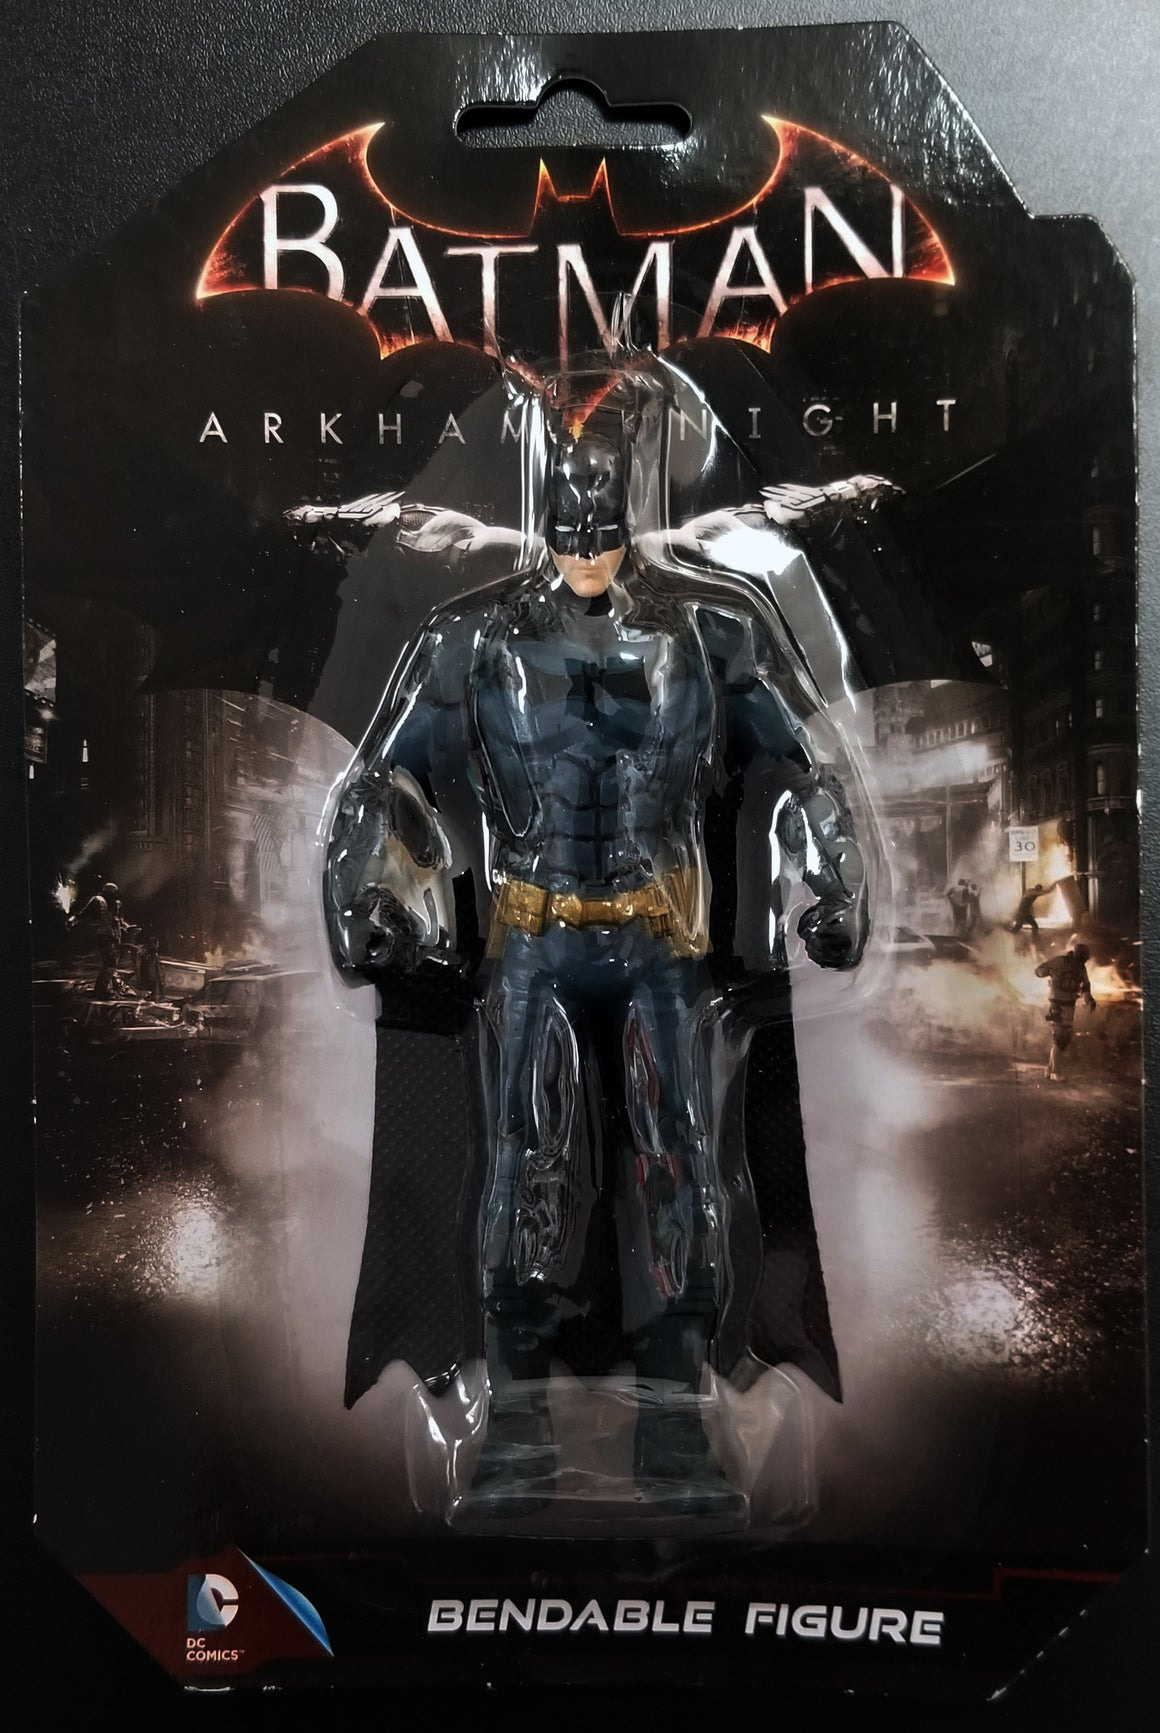 Batman Arkham Knight Bendable Figure